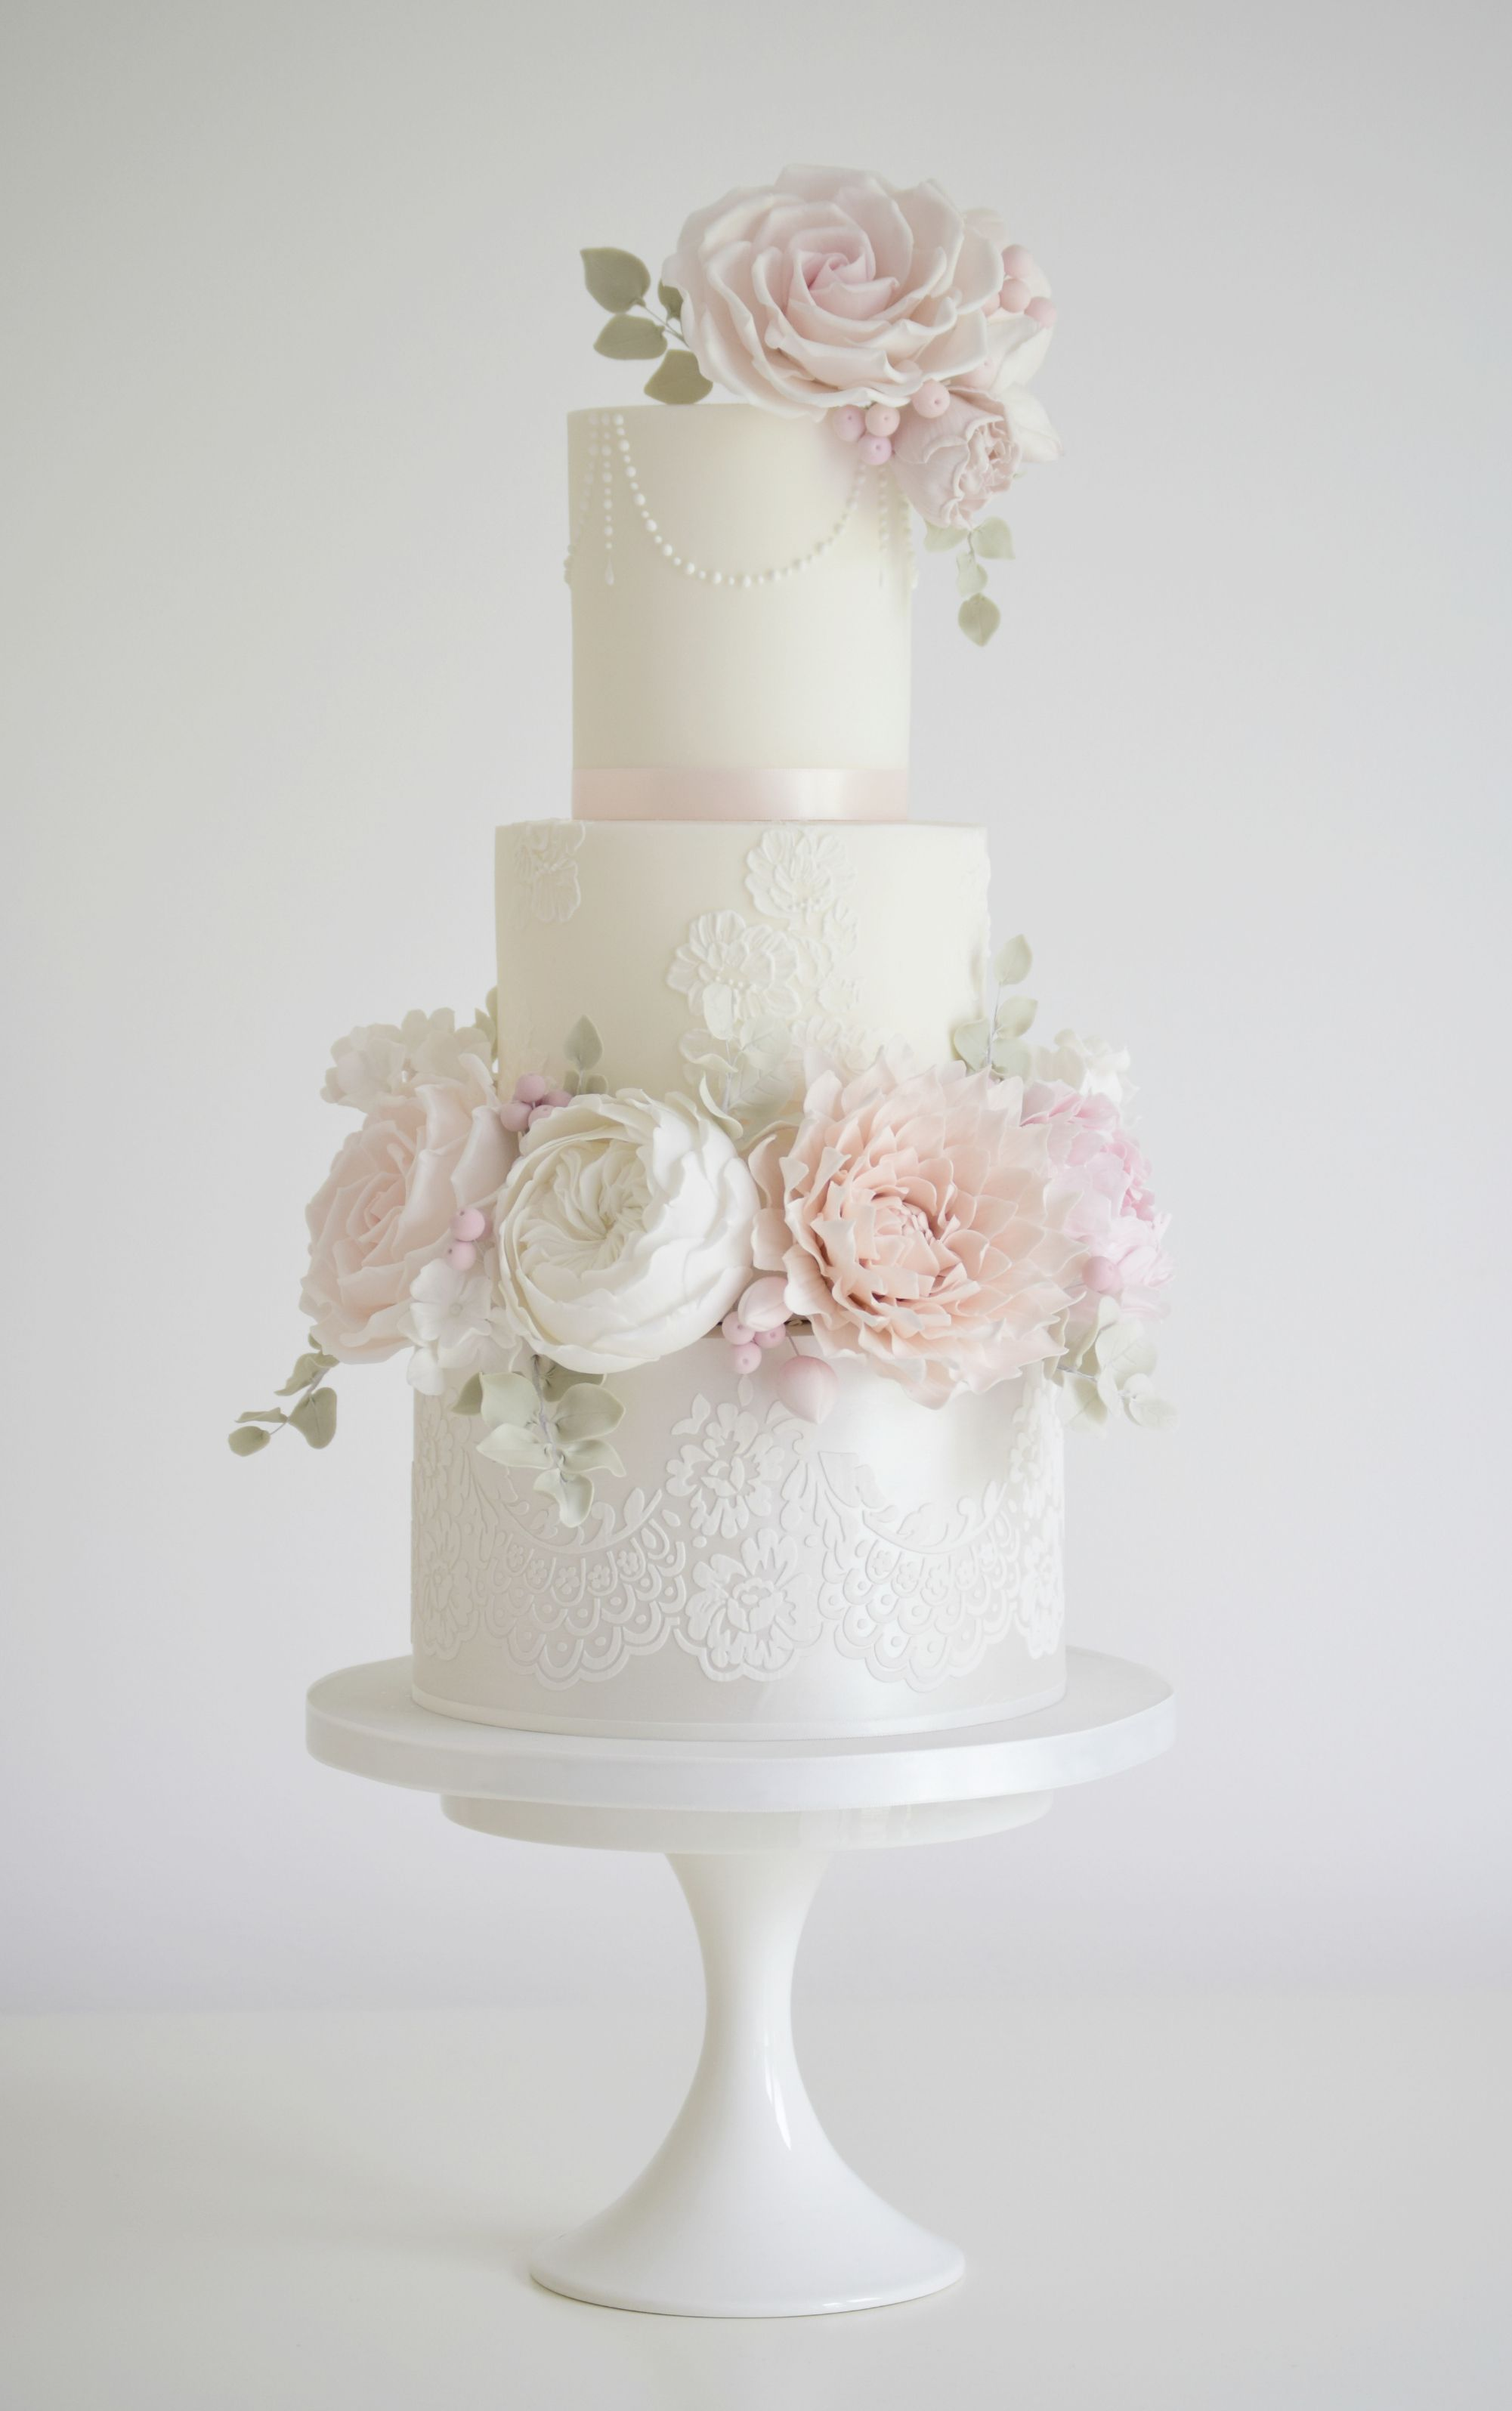 Wedding decorations garden december 2018 Country Garden   Lauren wedding cakes  Pinterest  Wedding